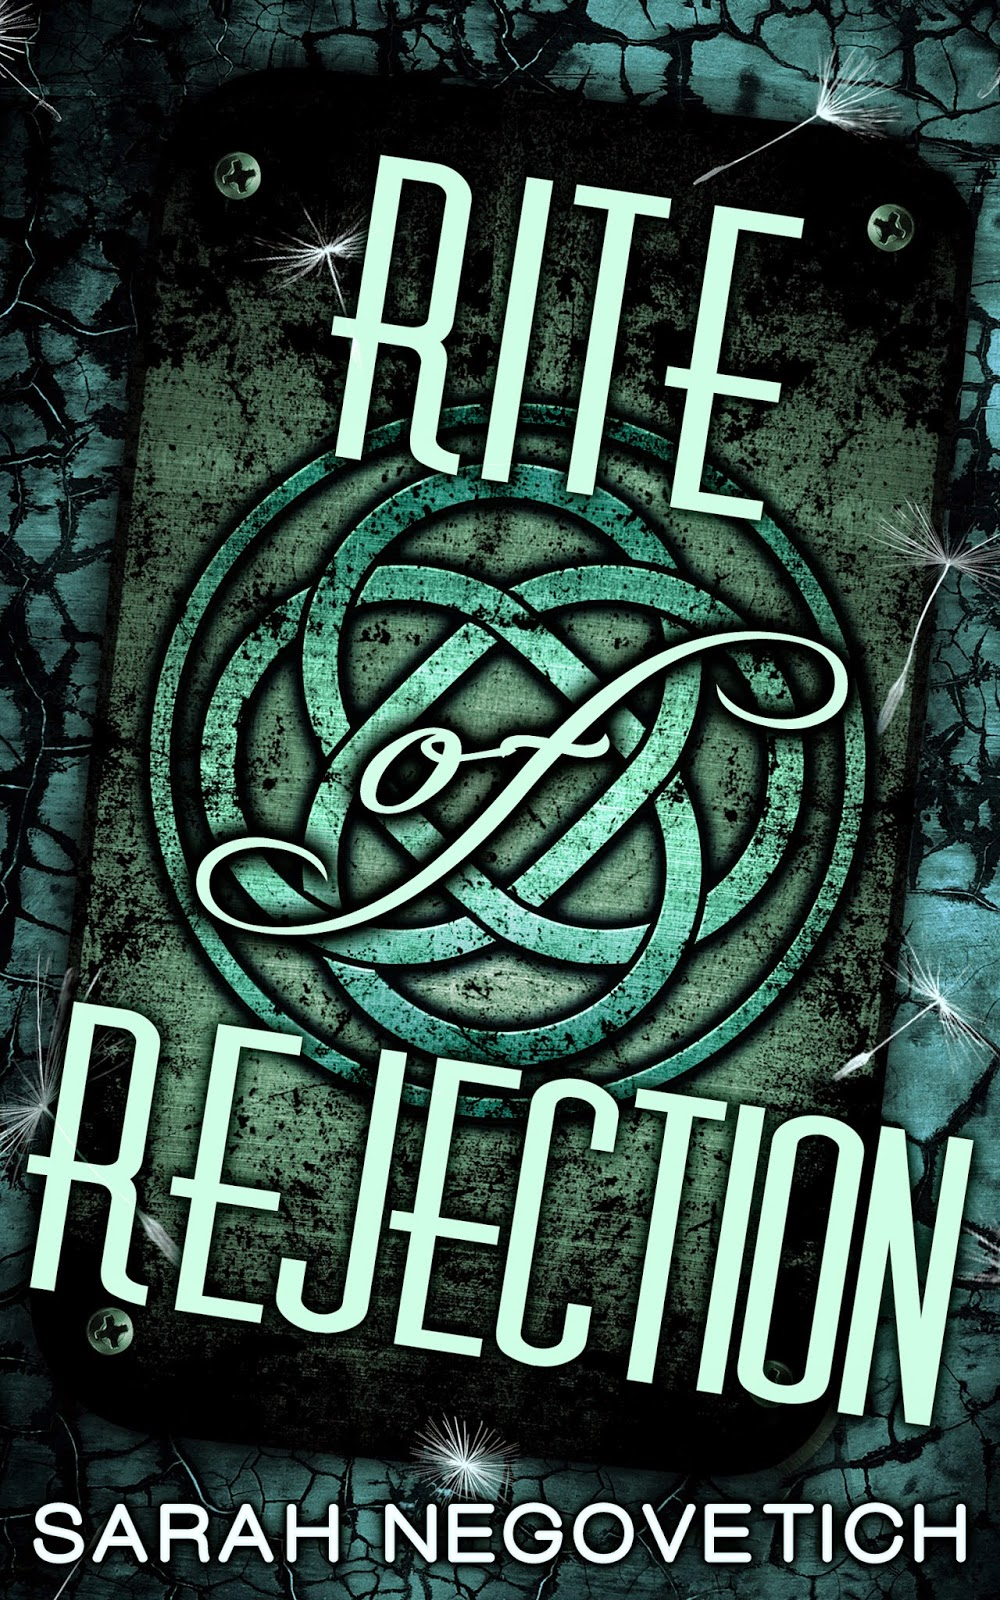 http://www.amazon.com/Rite-Rejection-Sarah-Negovetich-ebook/dp/B00P26DB08/ref=sr_1_1_twi_1?ie=UTF8&qid=1417757226&sr=8-1&keywords=rite+of+rejection